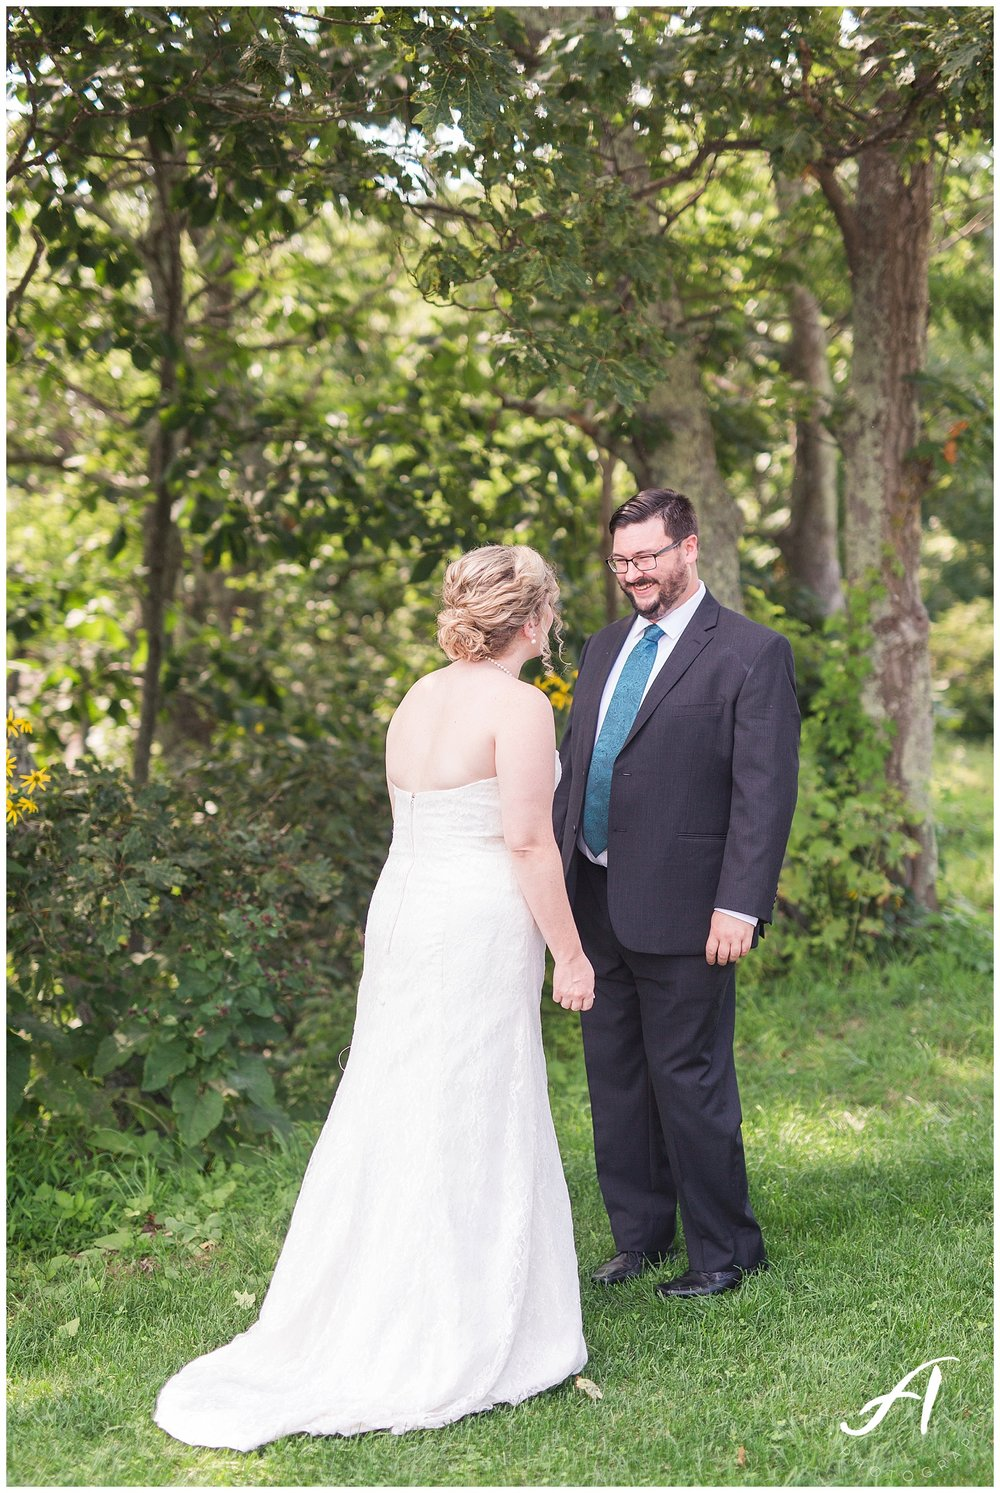 Mountain View Wedding || Central Virginia, Wintergreen Resort Wedding || Ashley Eiban Photography || www.ashleyeiban.com